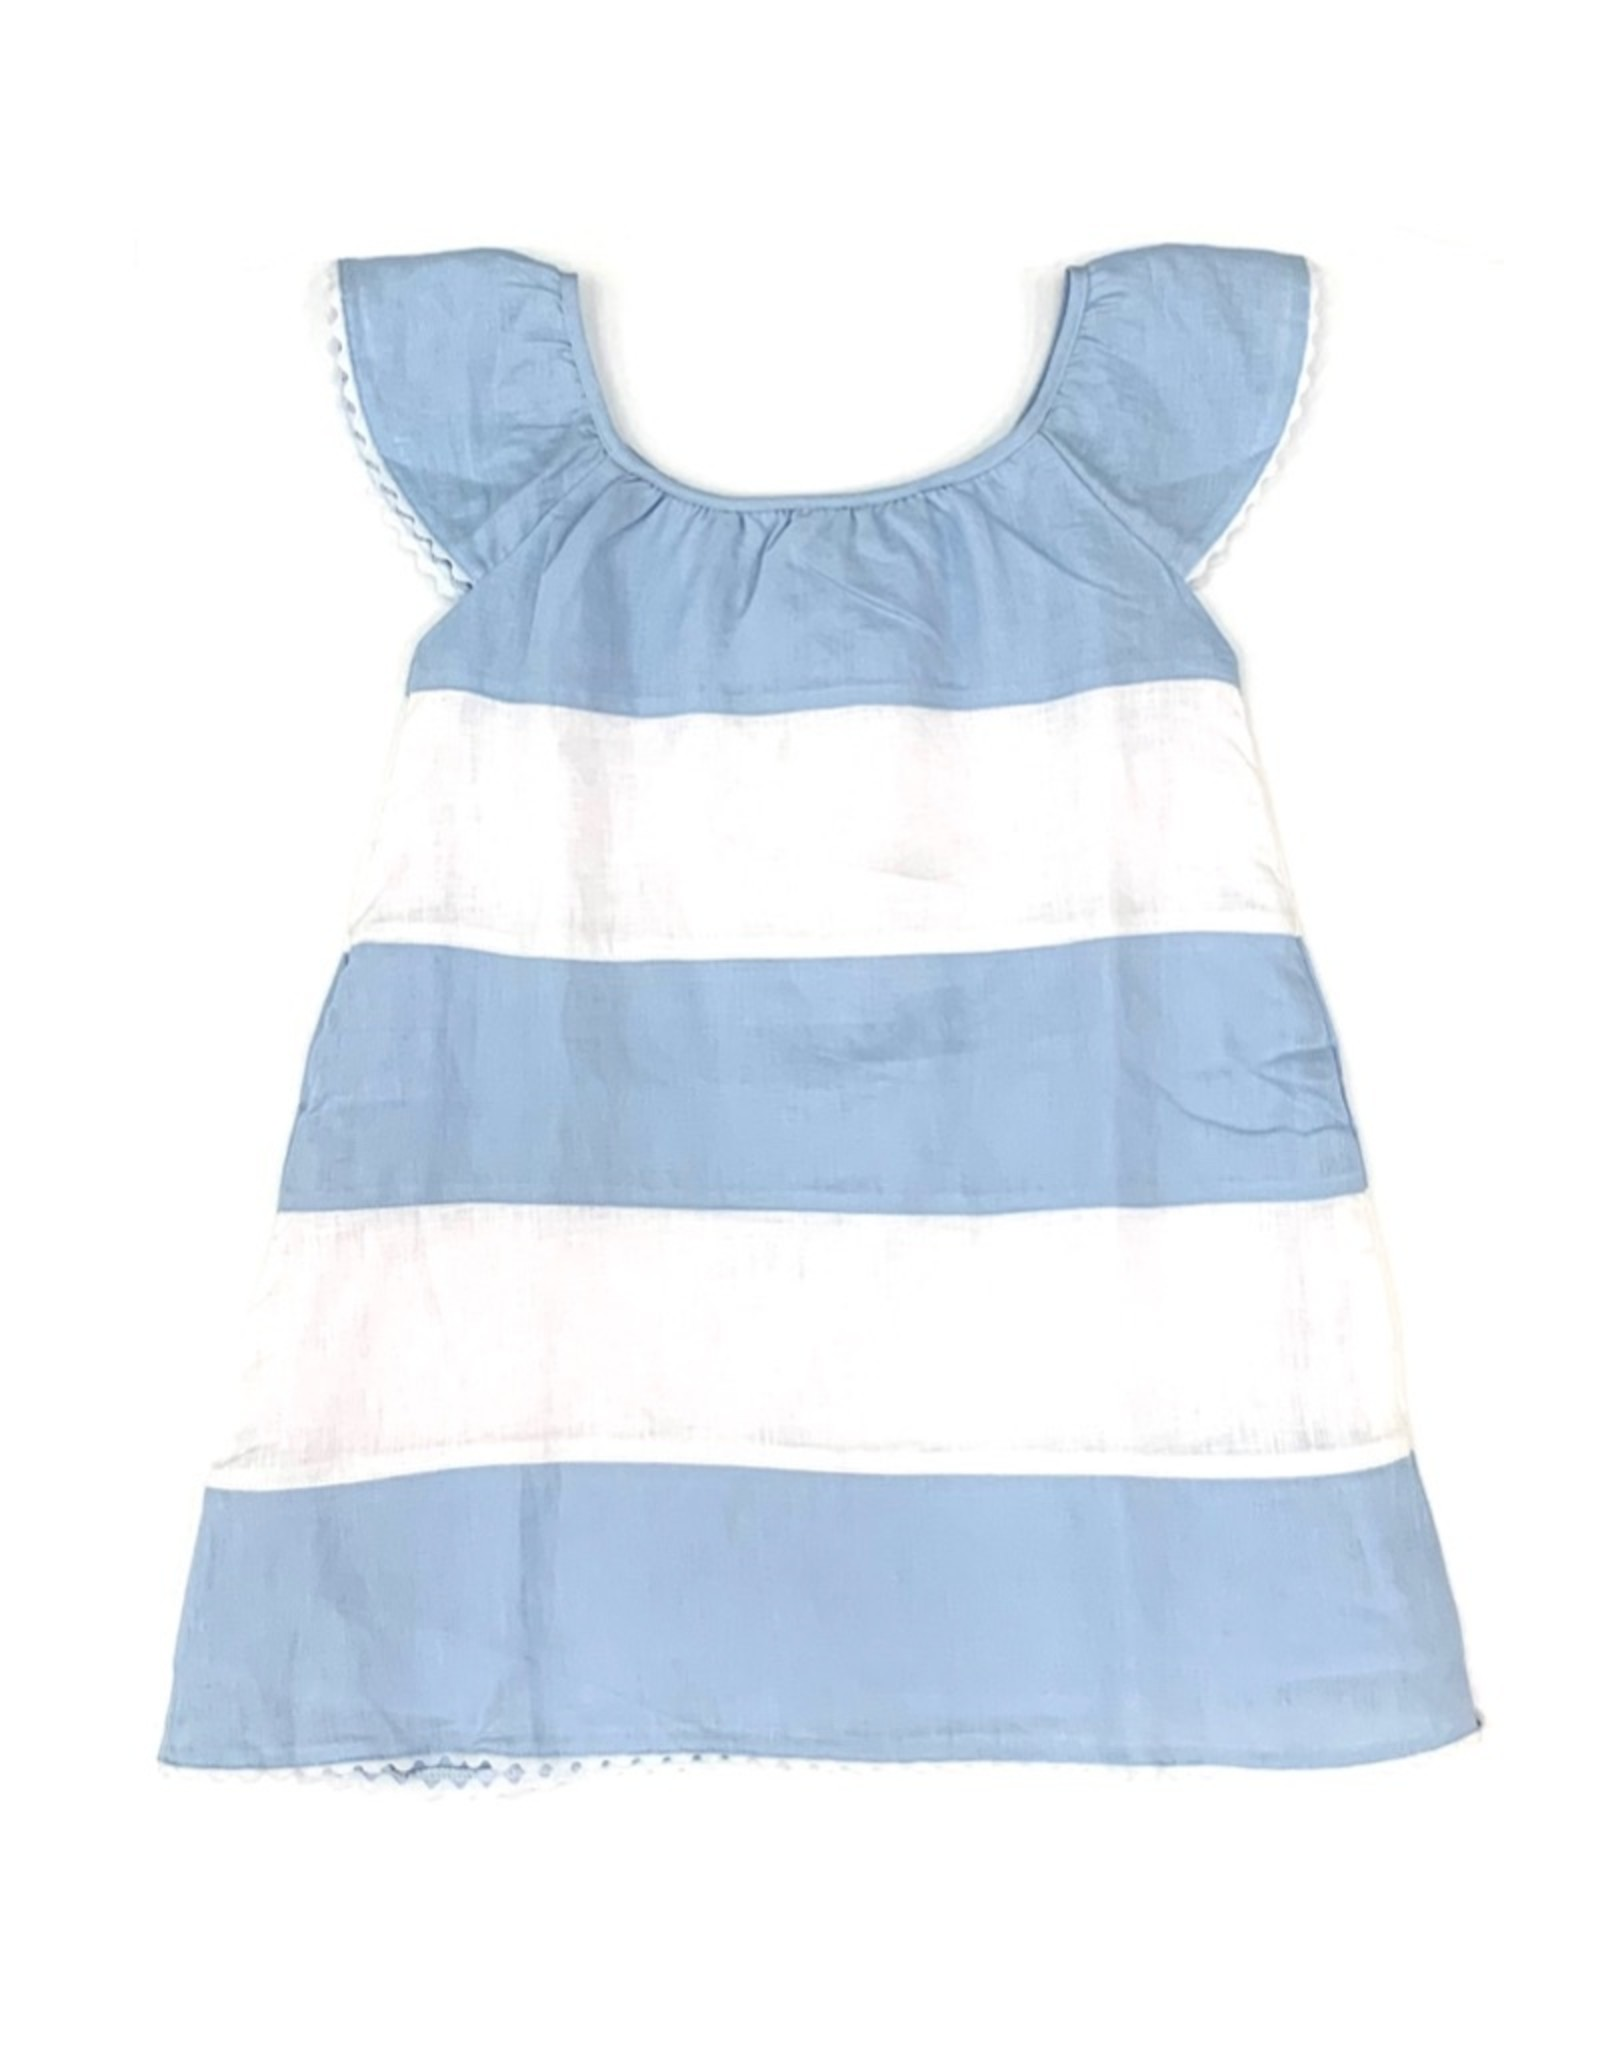 Madeline Girls Dress Baby blue And White